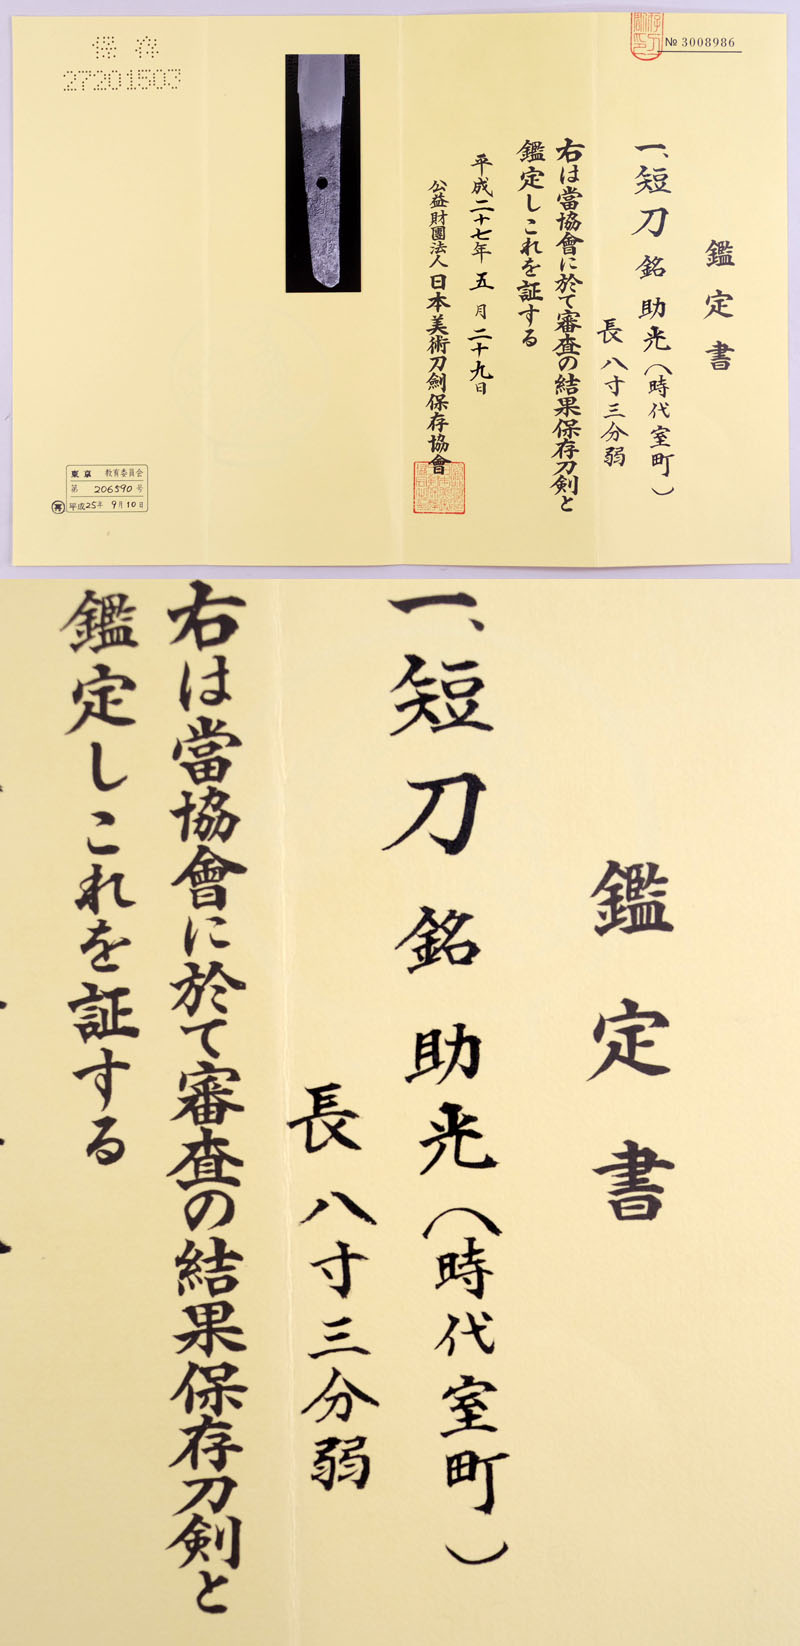 助光(時代室町) Picture of Certificate